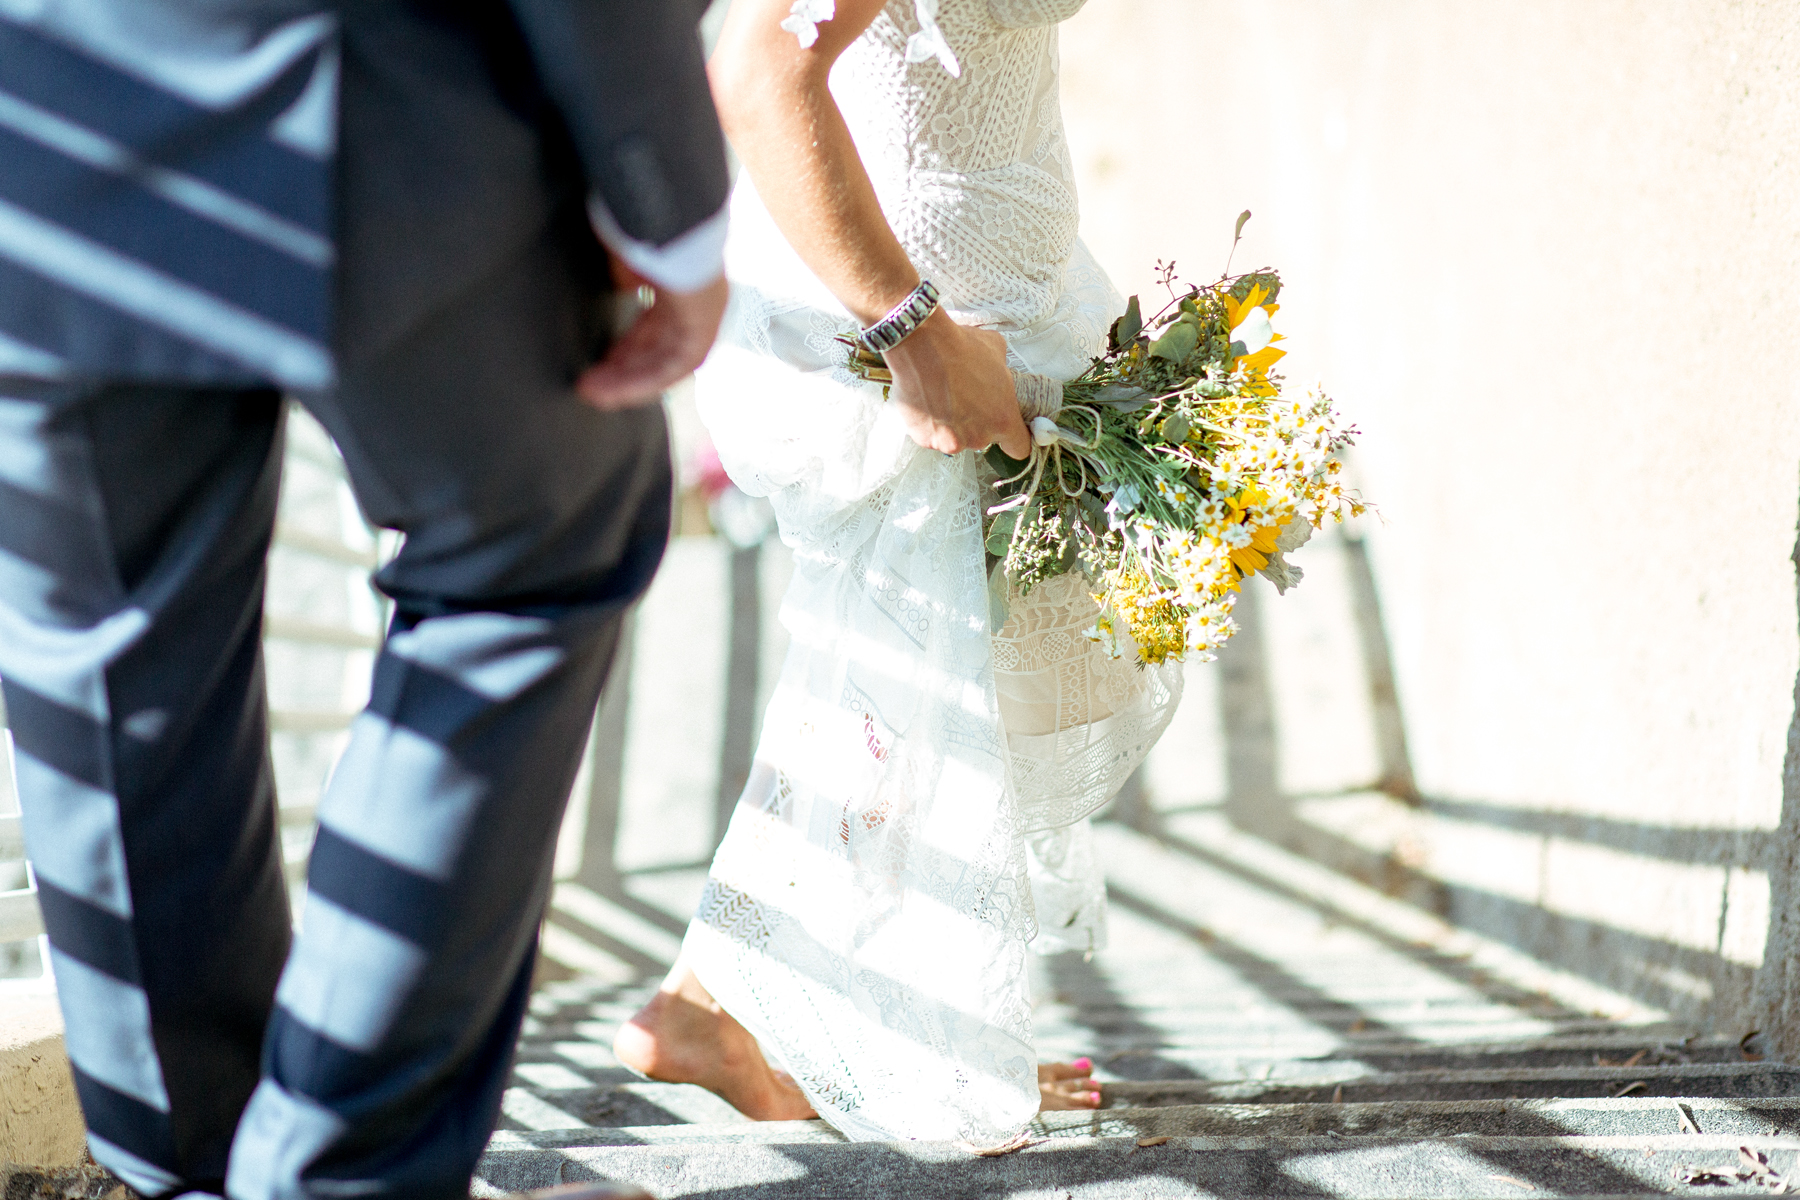 Frank+MelPhotography_Weddings_Ash+Ian_PRSolanaBeach_WEB_18